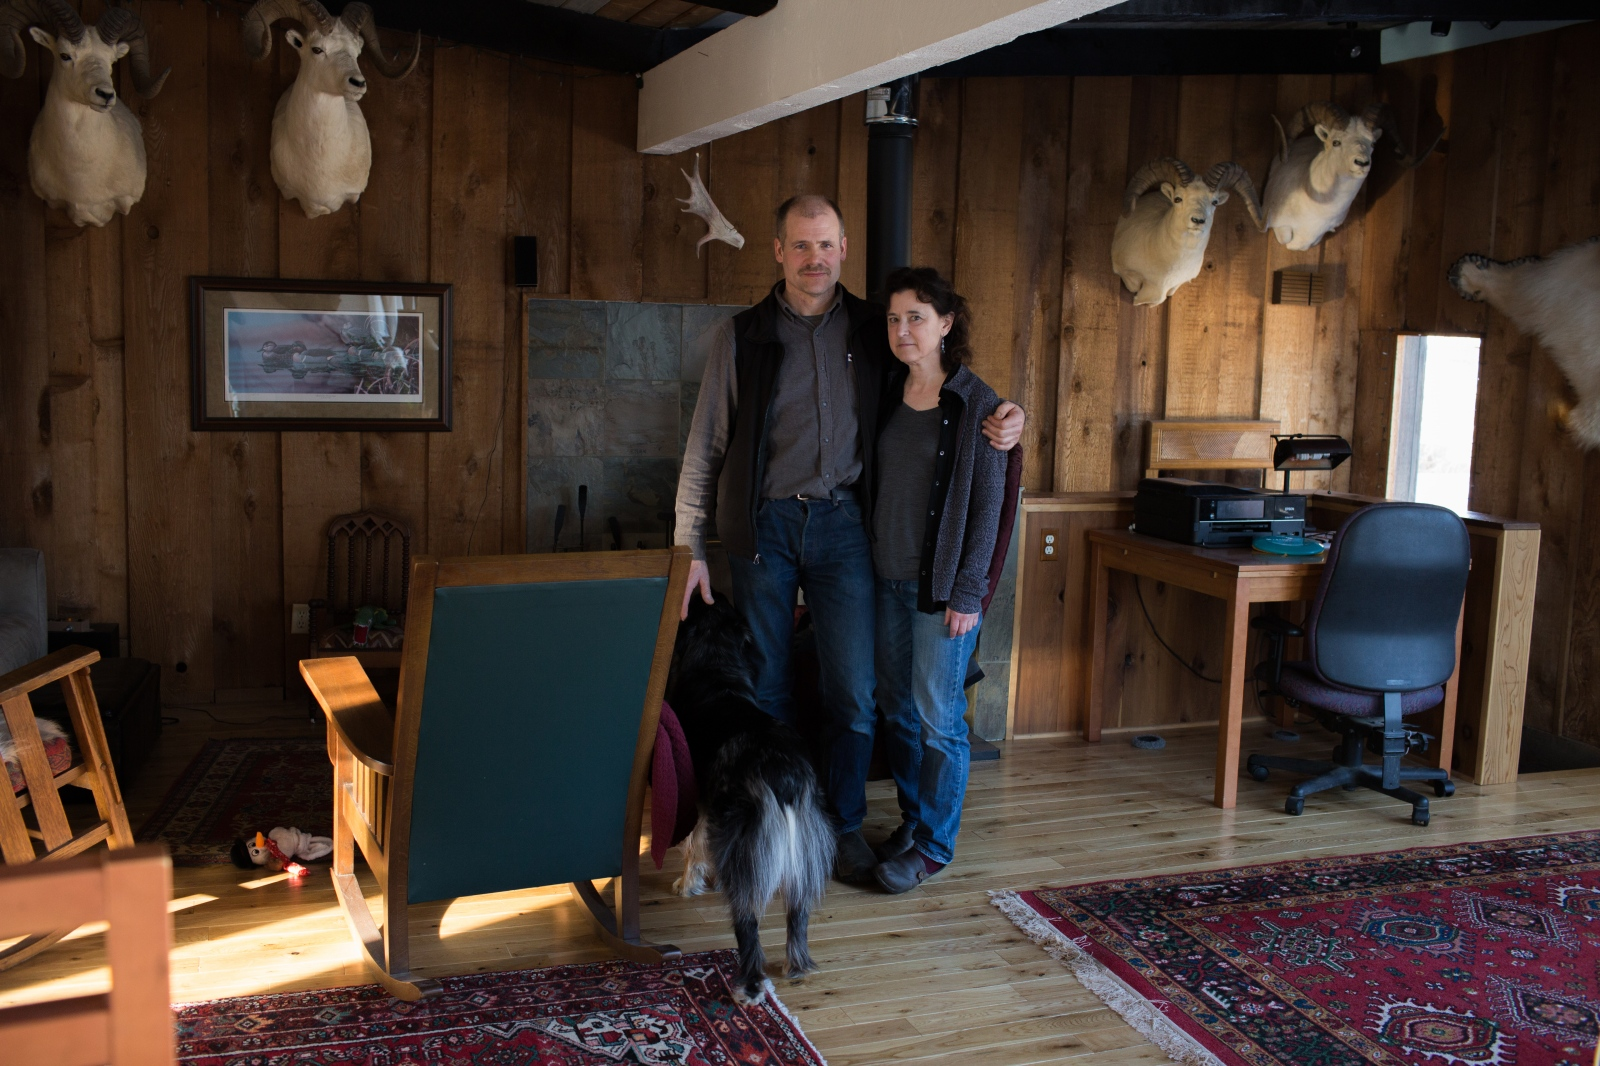 Andrew Hawk and his girlfriend, Jen Jolliffe, in their home in Anchorage.